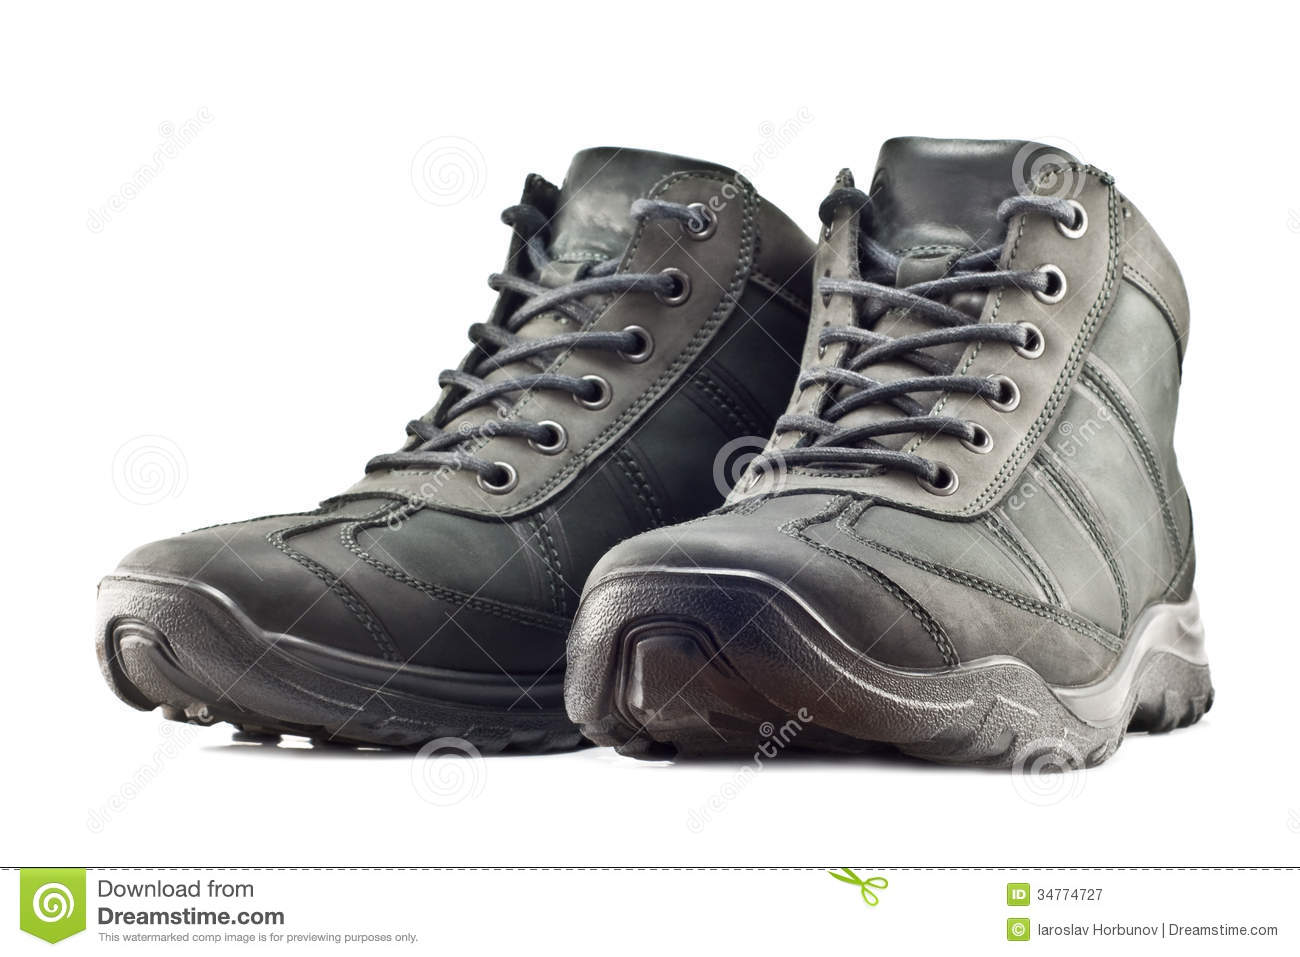 Men's Hiking Boots Stock Photos - Image: 36538983